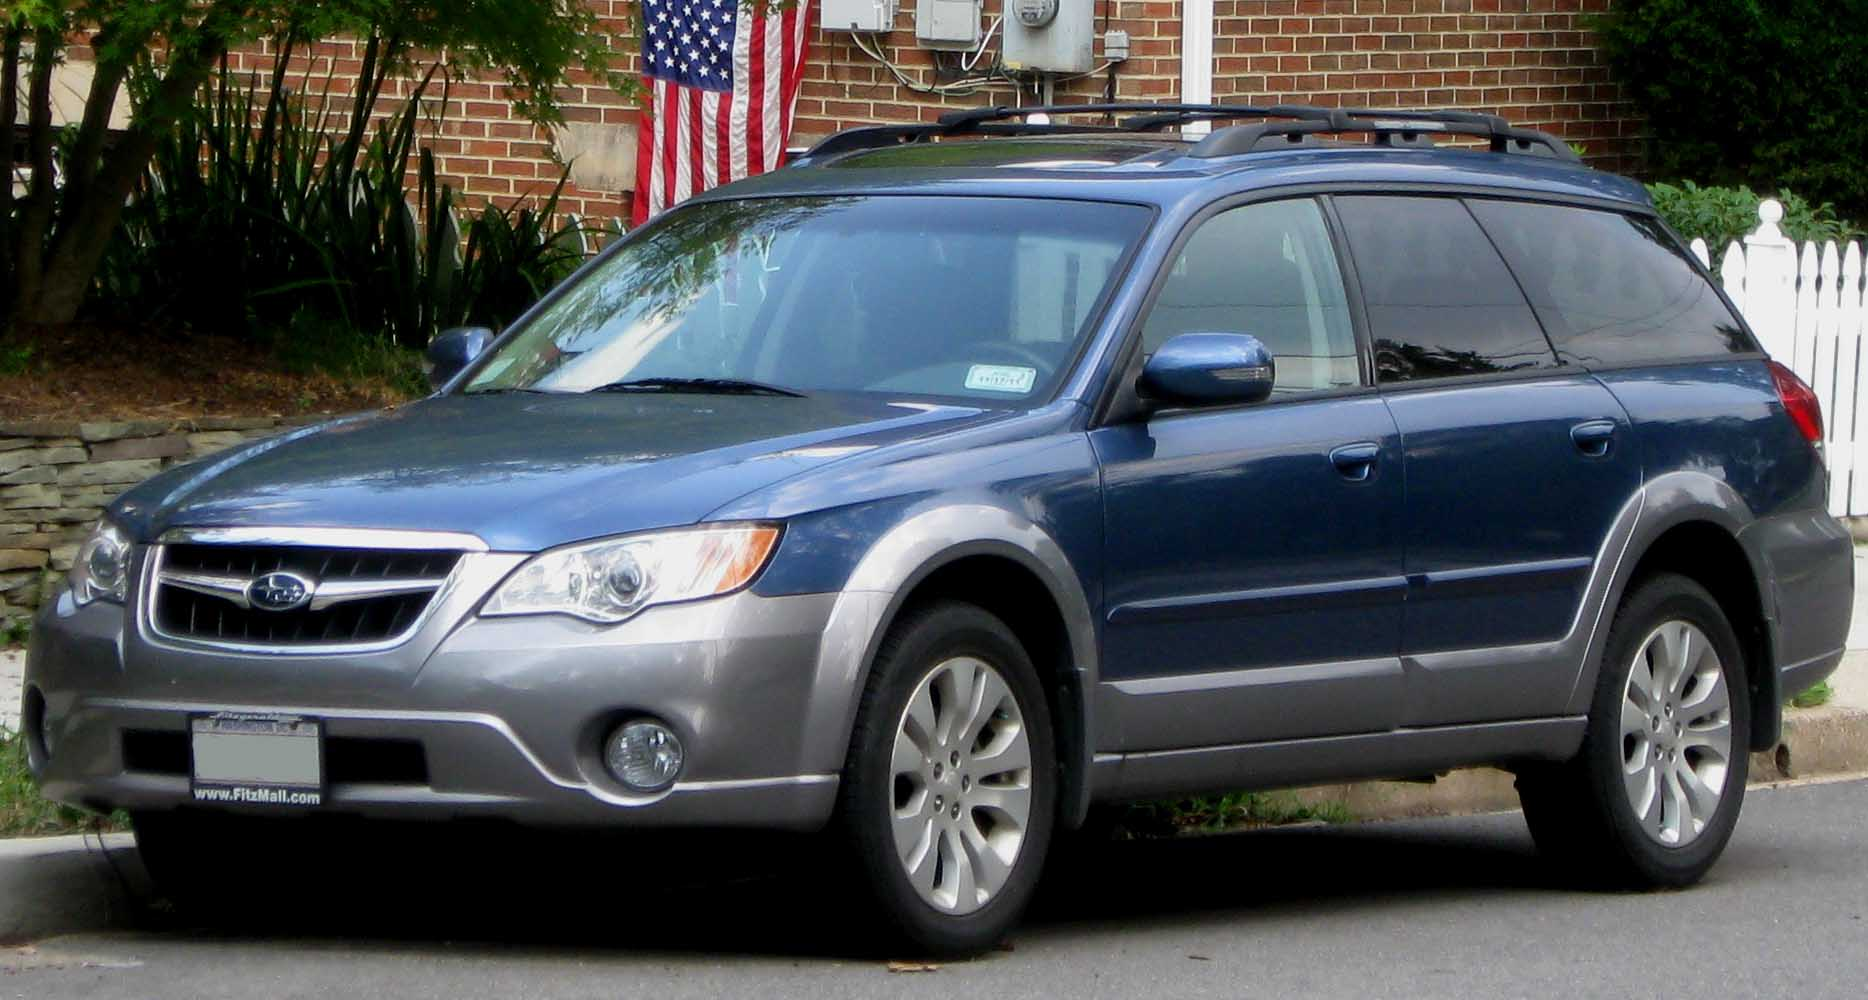 2008 Subaru Outback Information And Photos Zombiedrive